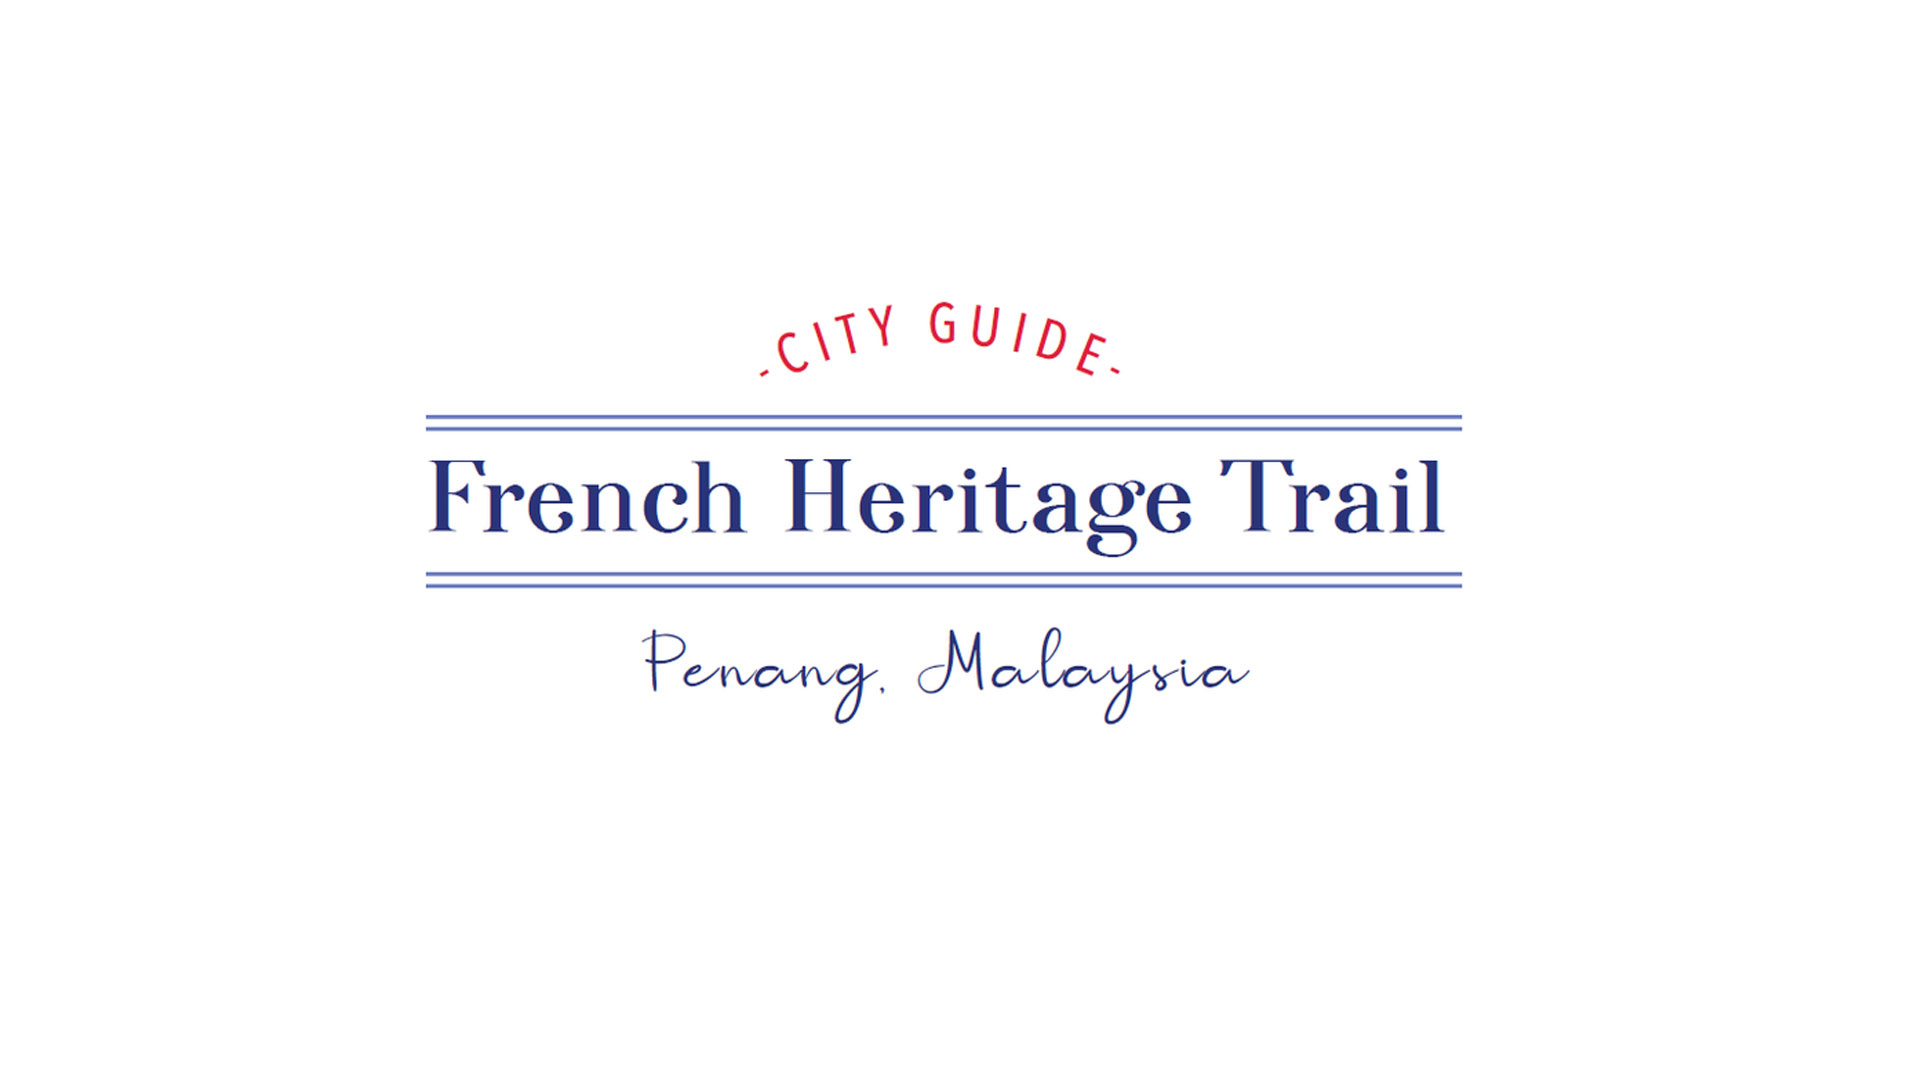 Launch of a French Heritage Trail in Penang